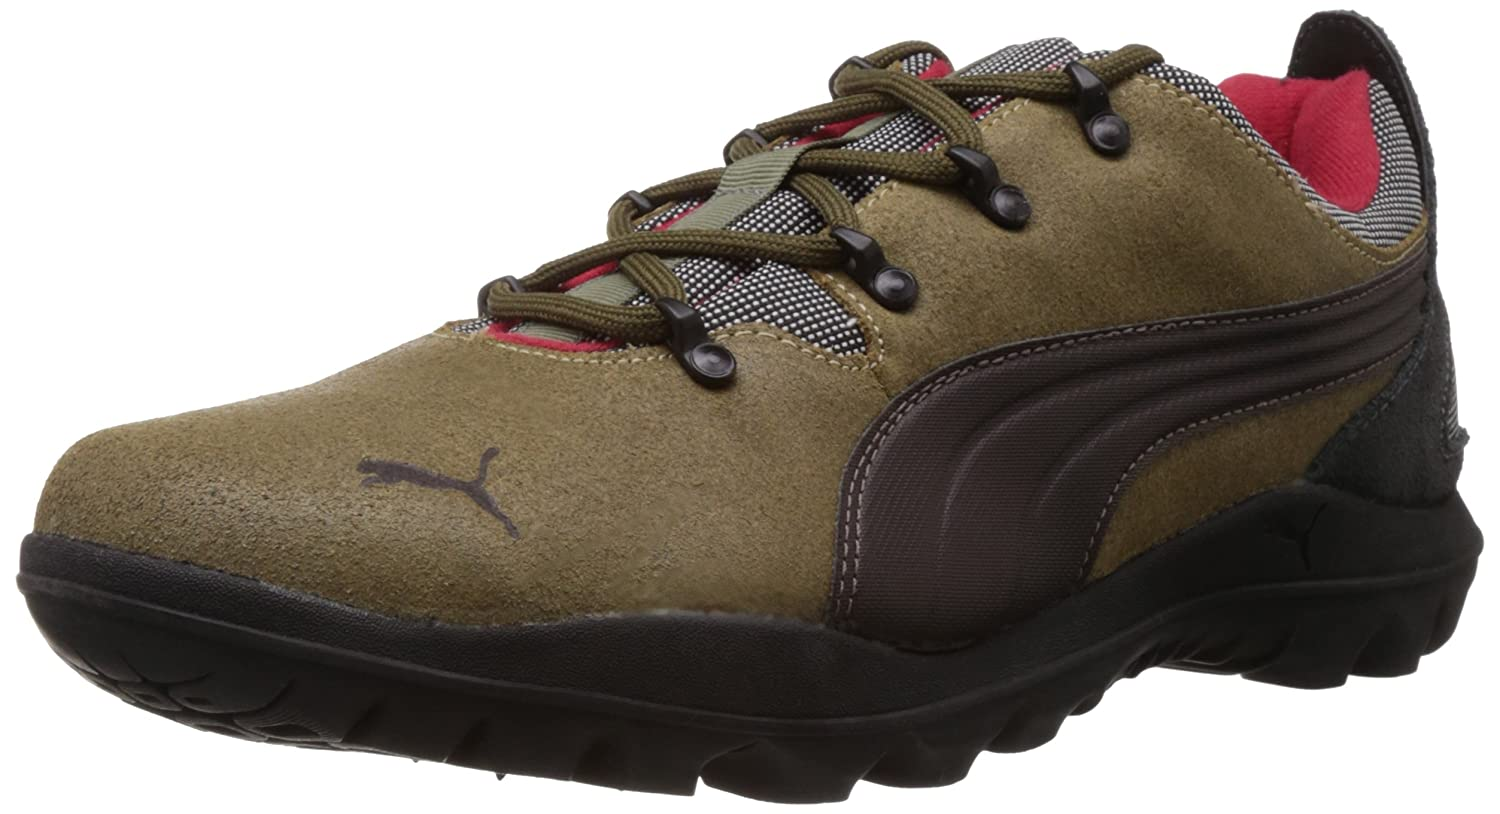 Puma Men's Silicis Low Brown Leather